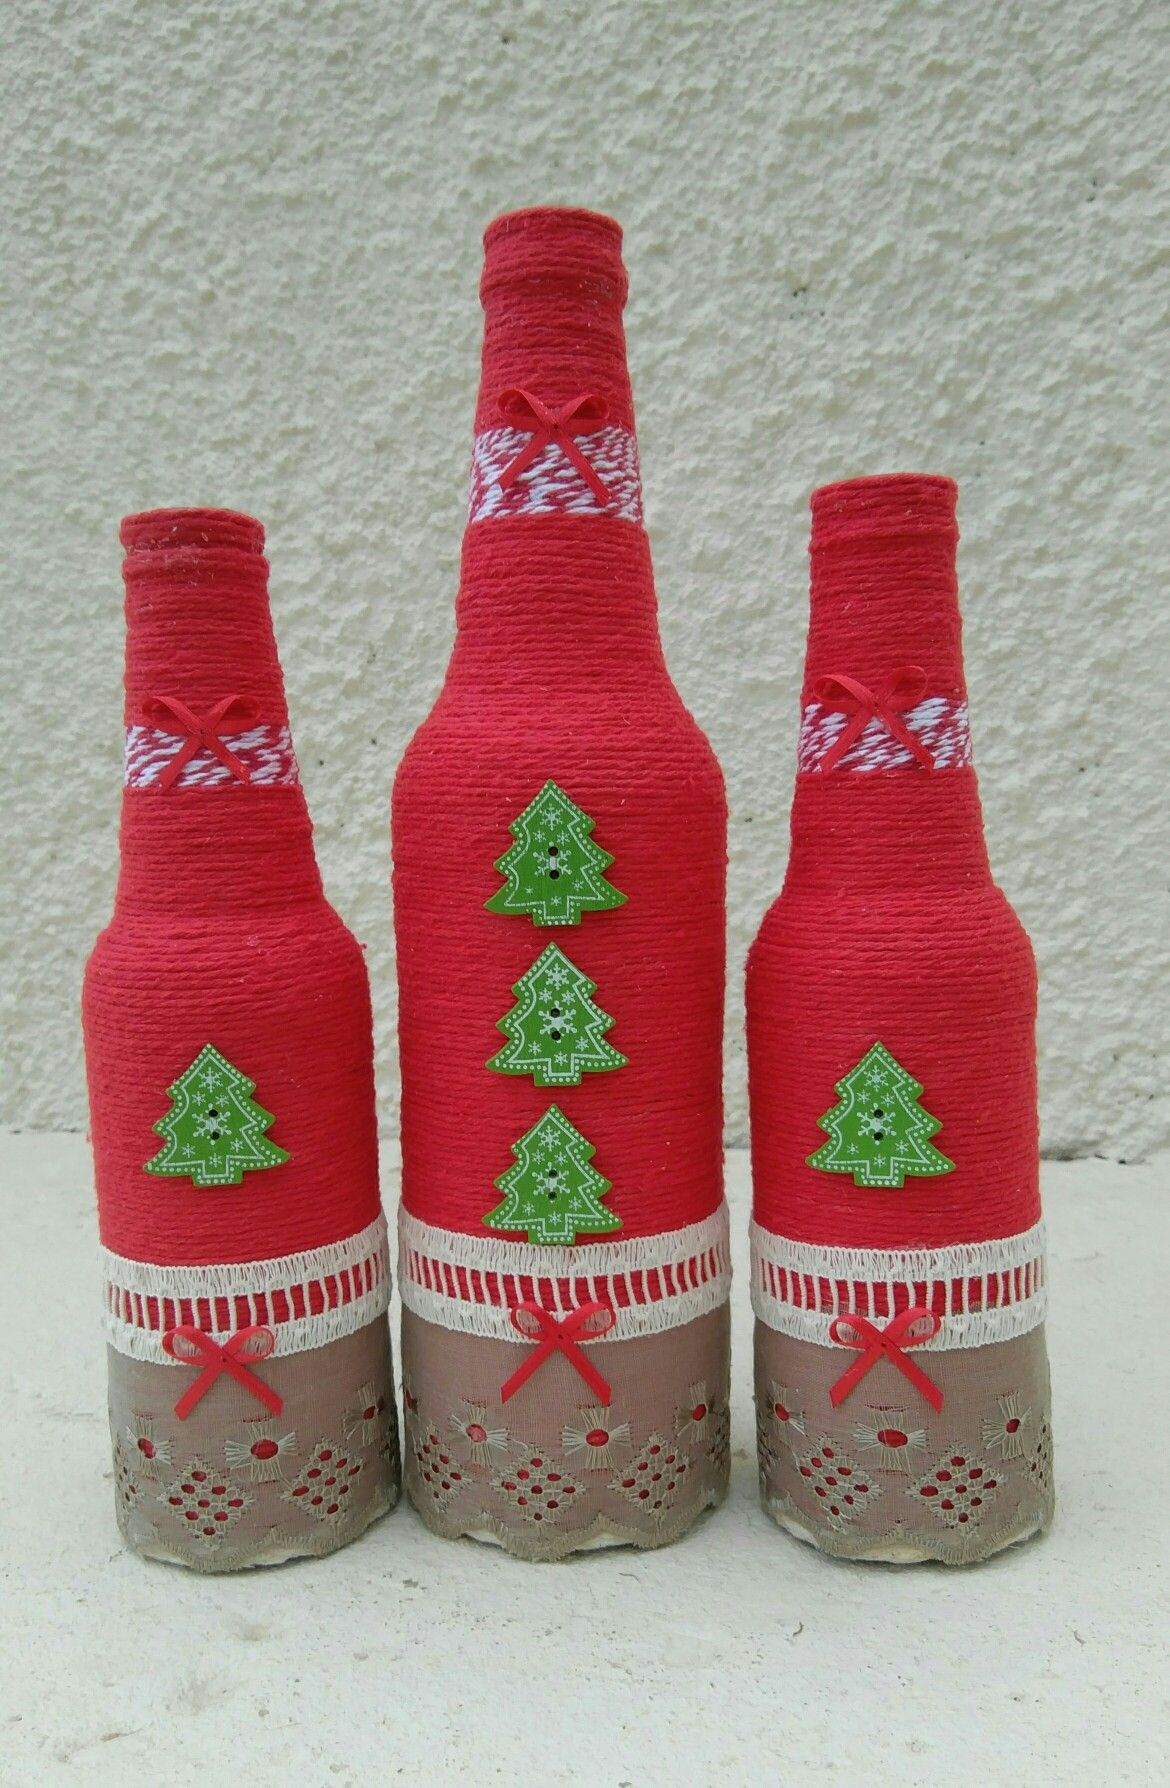 Botellas Decoradas Navideñas Pin De Xiomara Hernandez En Botellas Y Jarrones Botellas